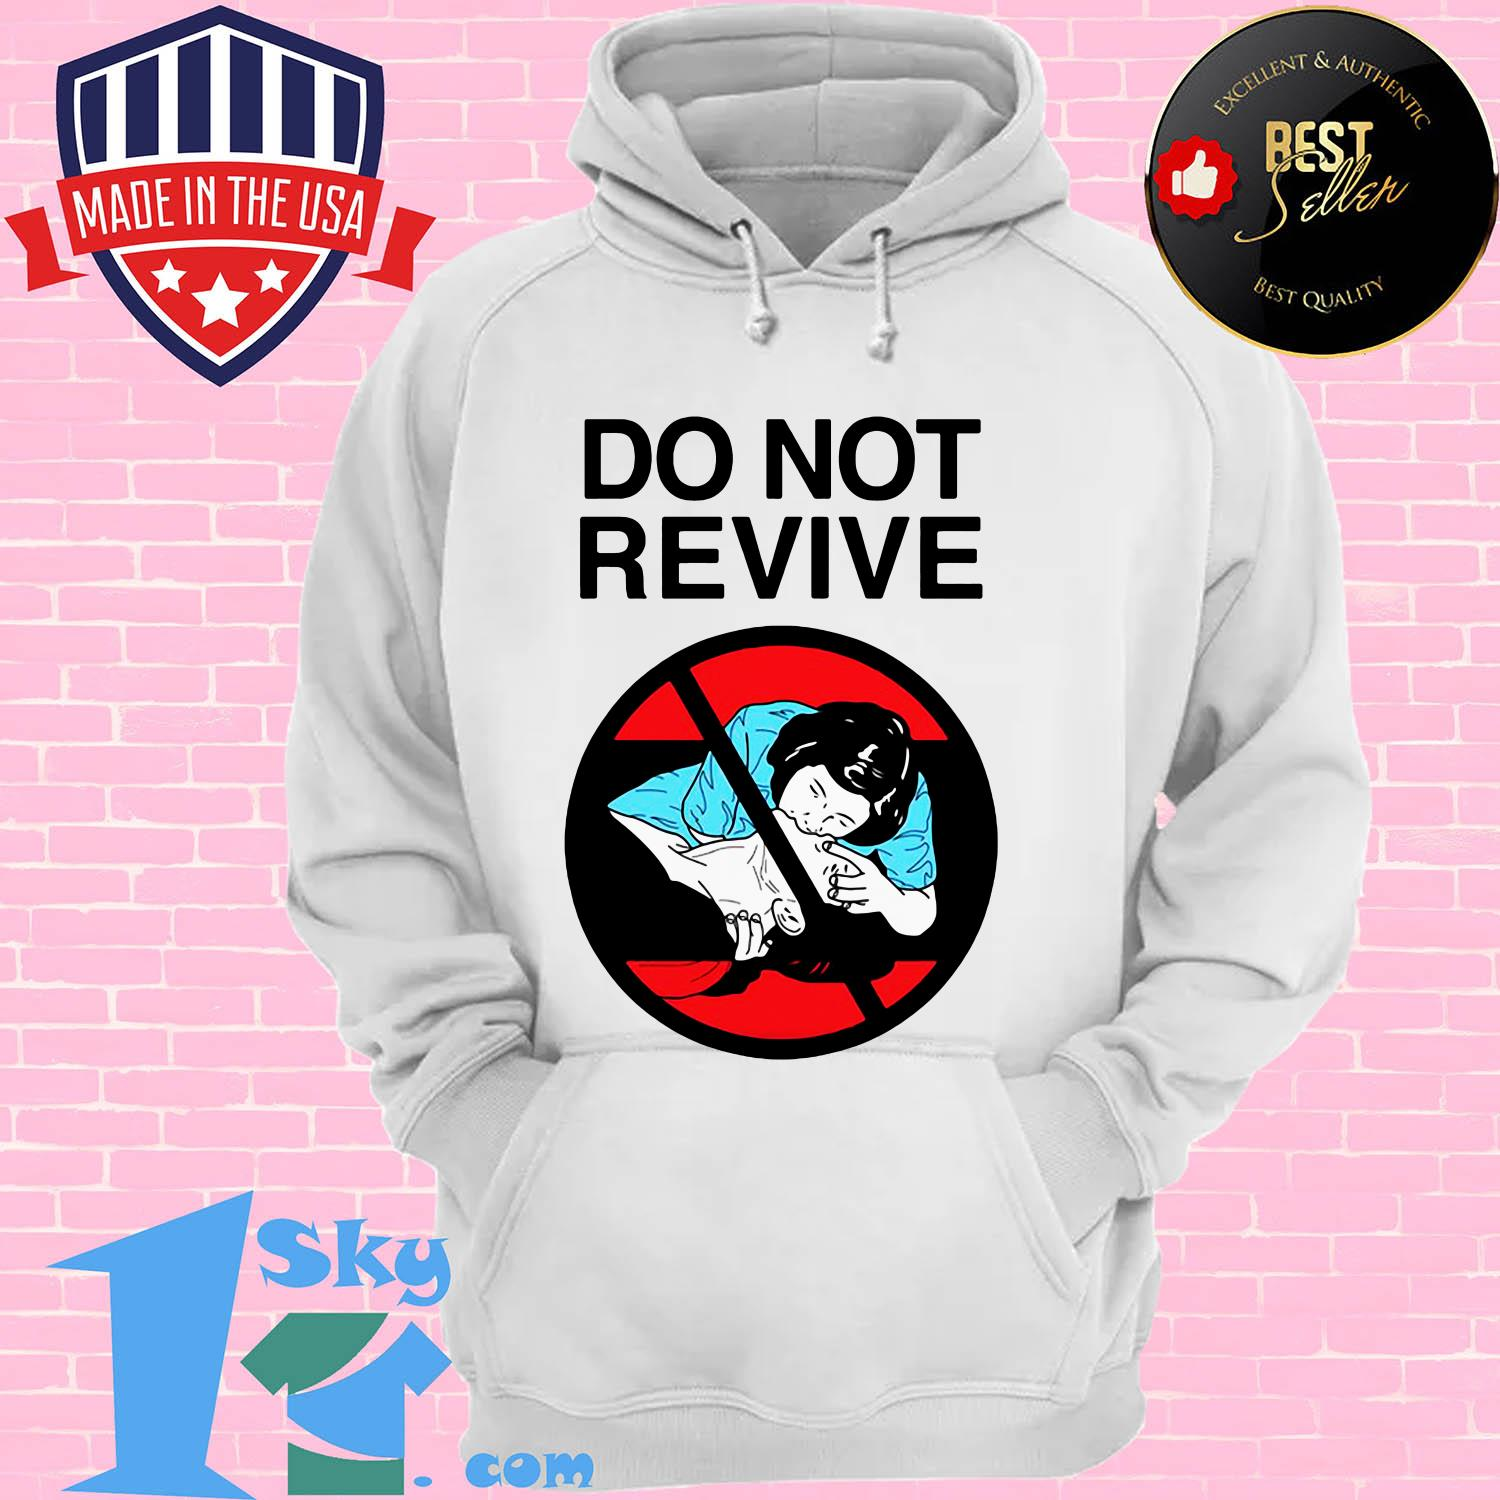 official do not revive hoodie - Official Do Not Revive shirt